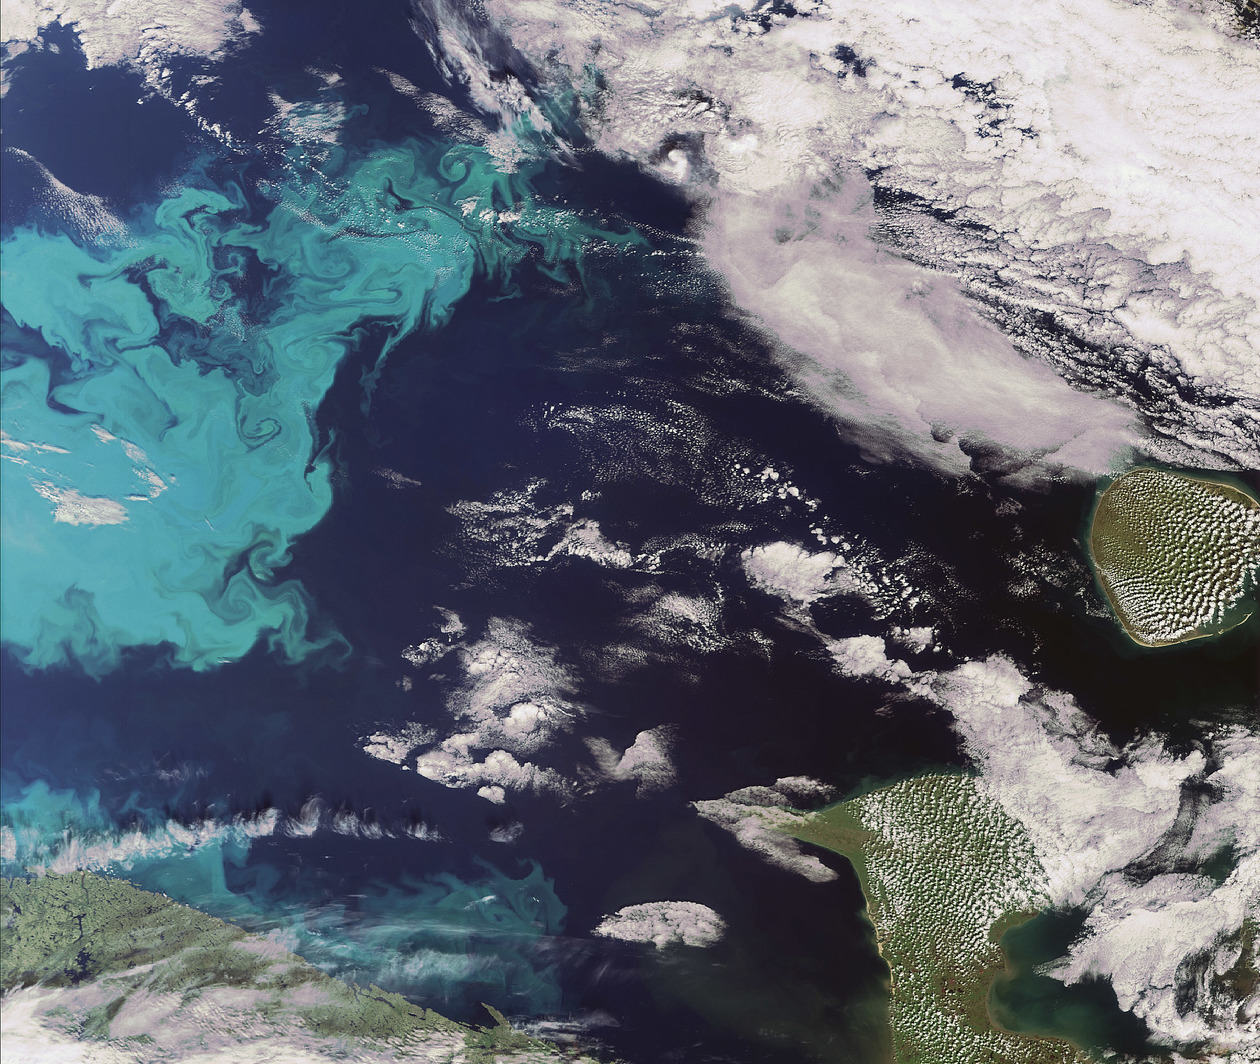 Earth Observation from Space: the Optical View